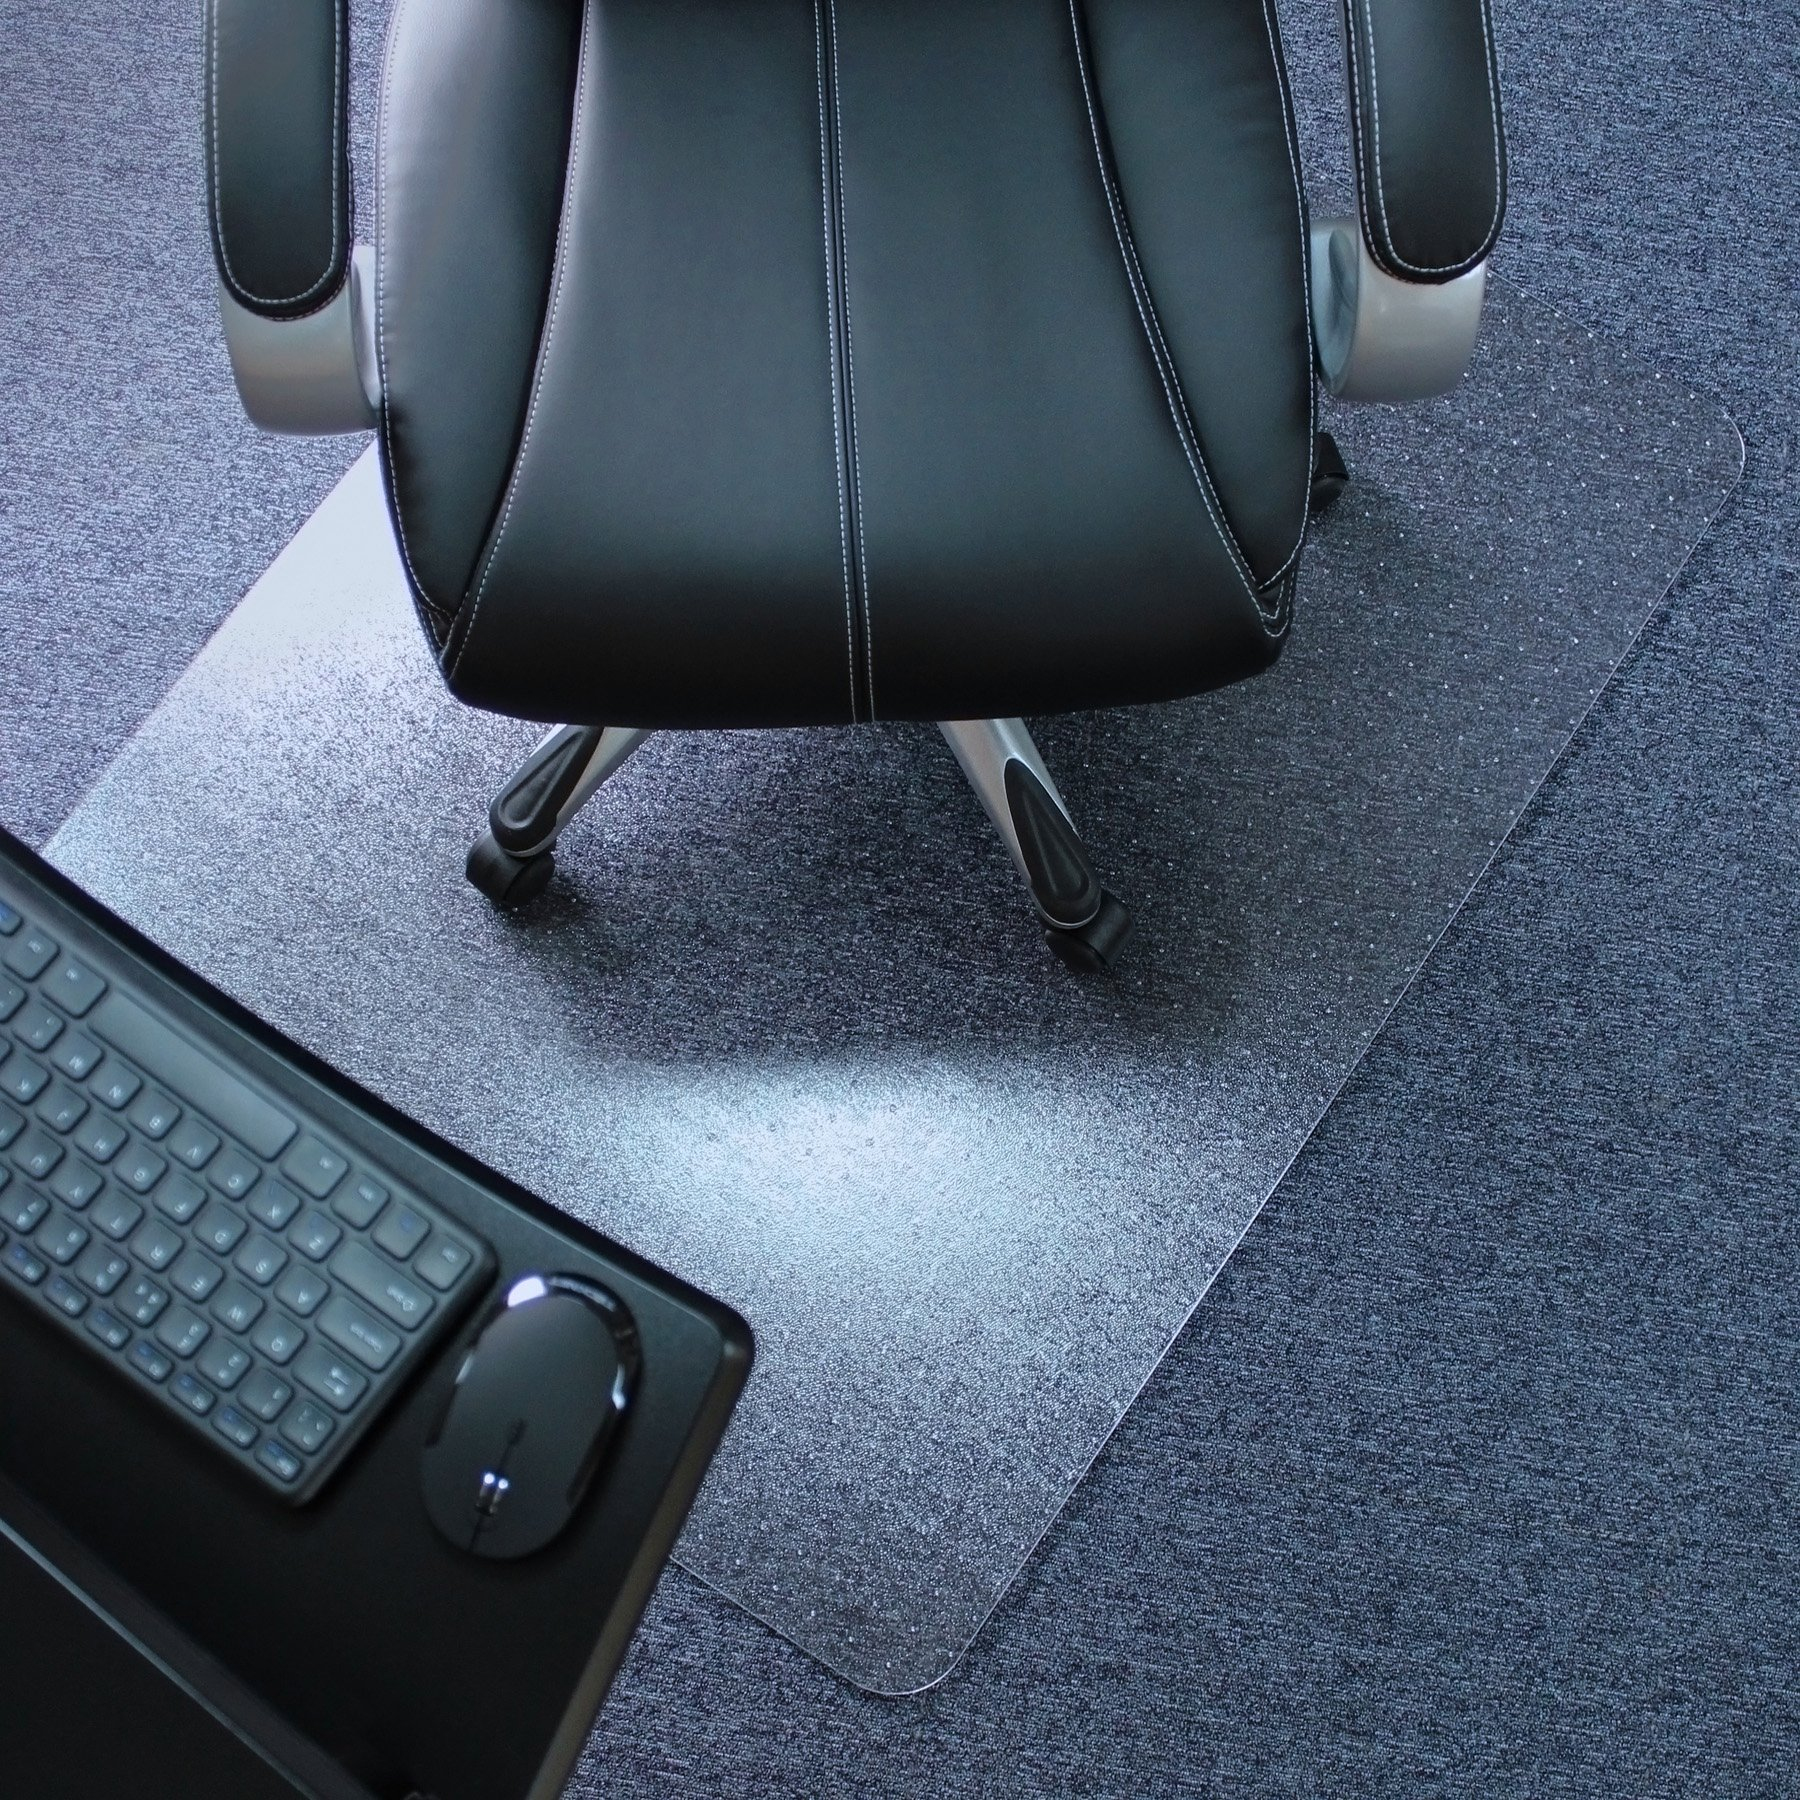 Marvelux 48'' x 60'' Polycarbonate (PC) Rectangular Chair Mat for Low, Standard and Medium Pile Carpets   Transparent Carpet Protector   Multiple Sizes by Marvelux